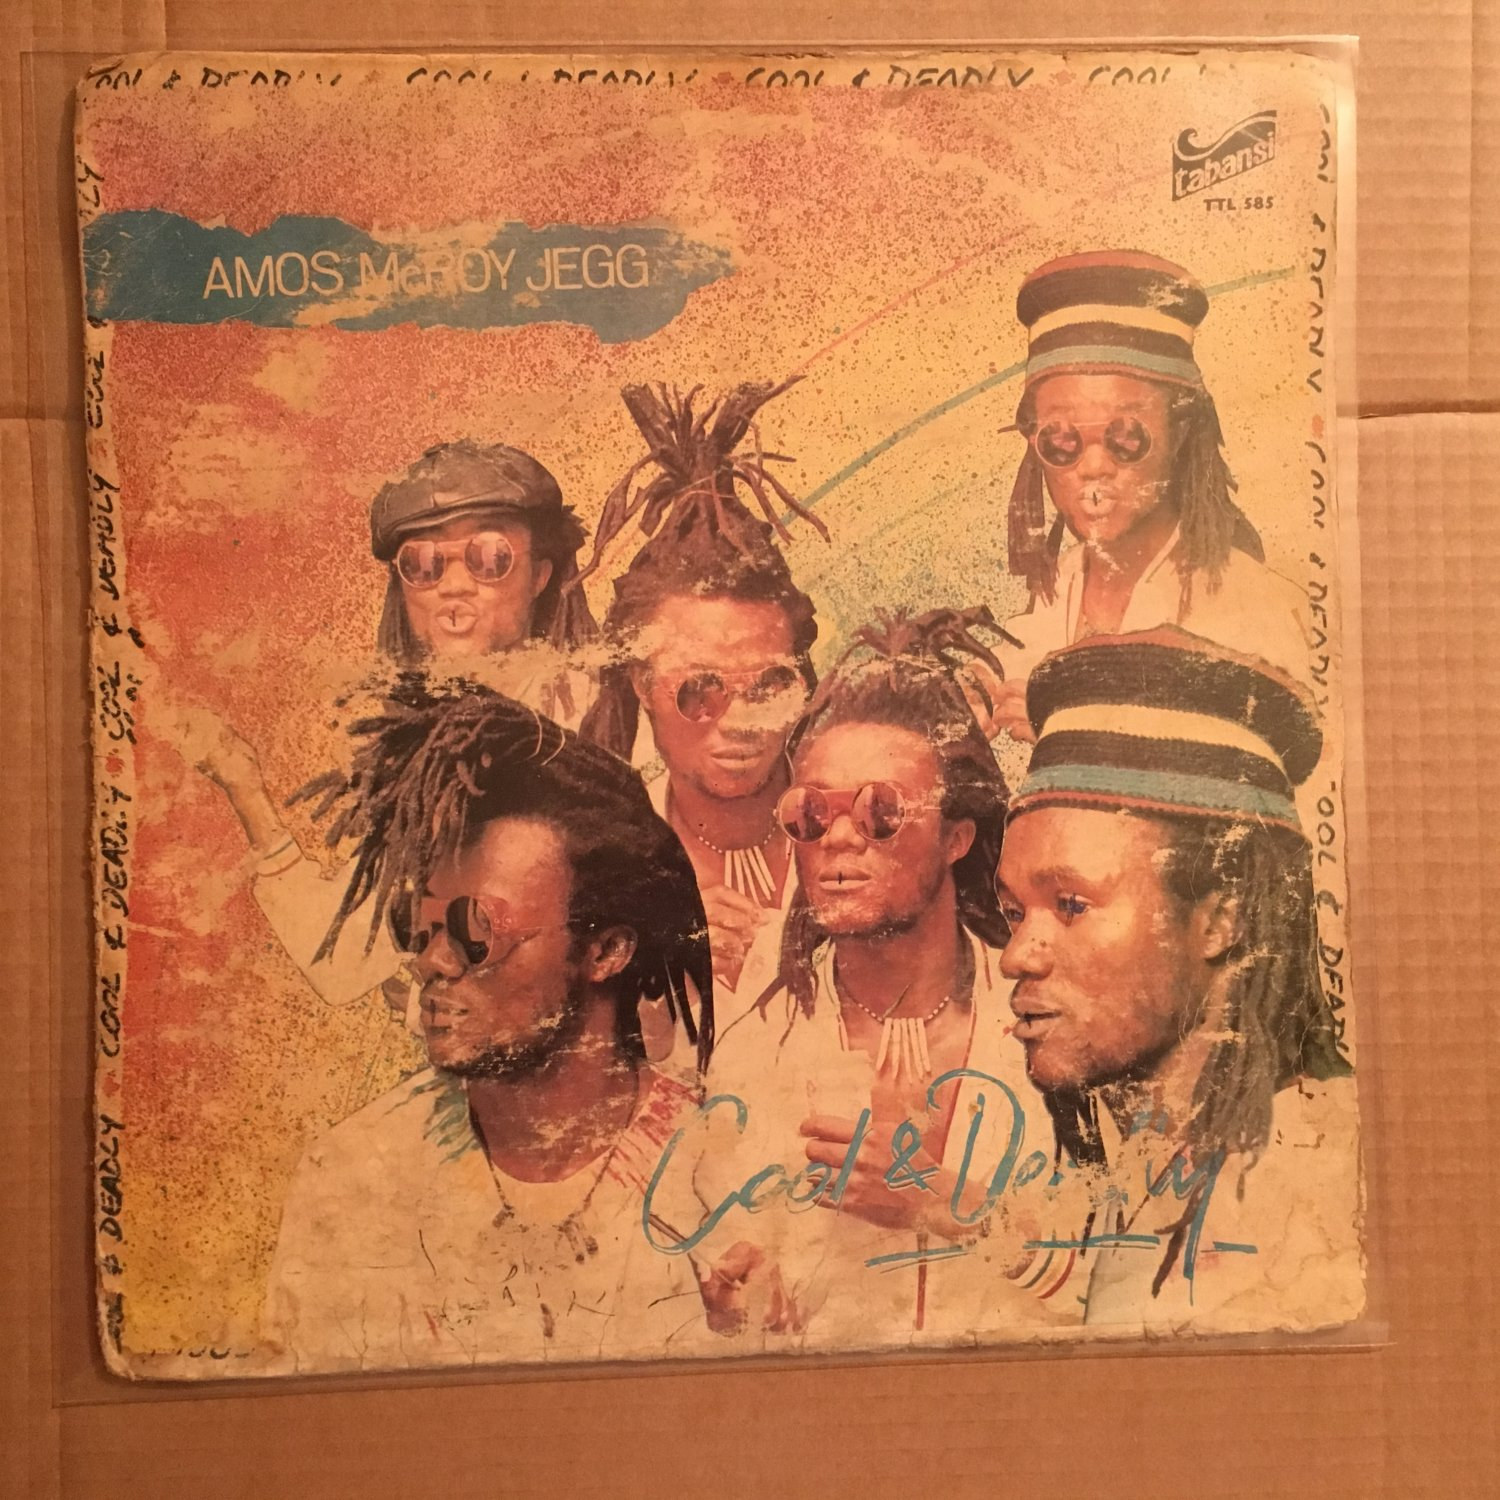 AMOS McROY JEGG LP cool & deadly NIGERIA REGGAE BOOGIE FUNK mp3 LISTEN